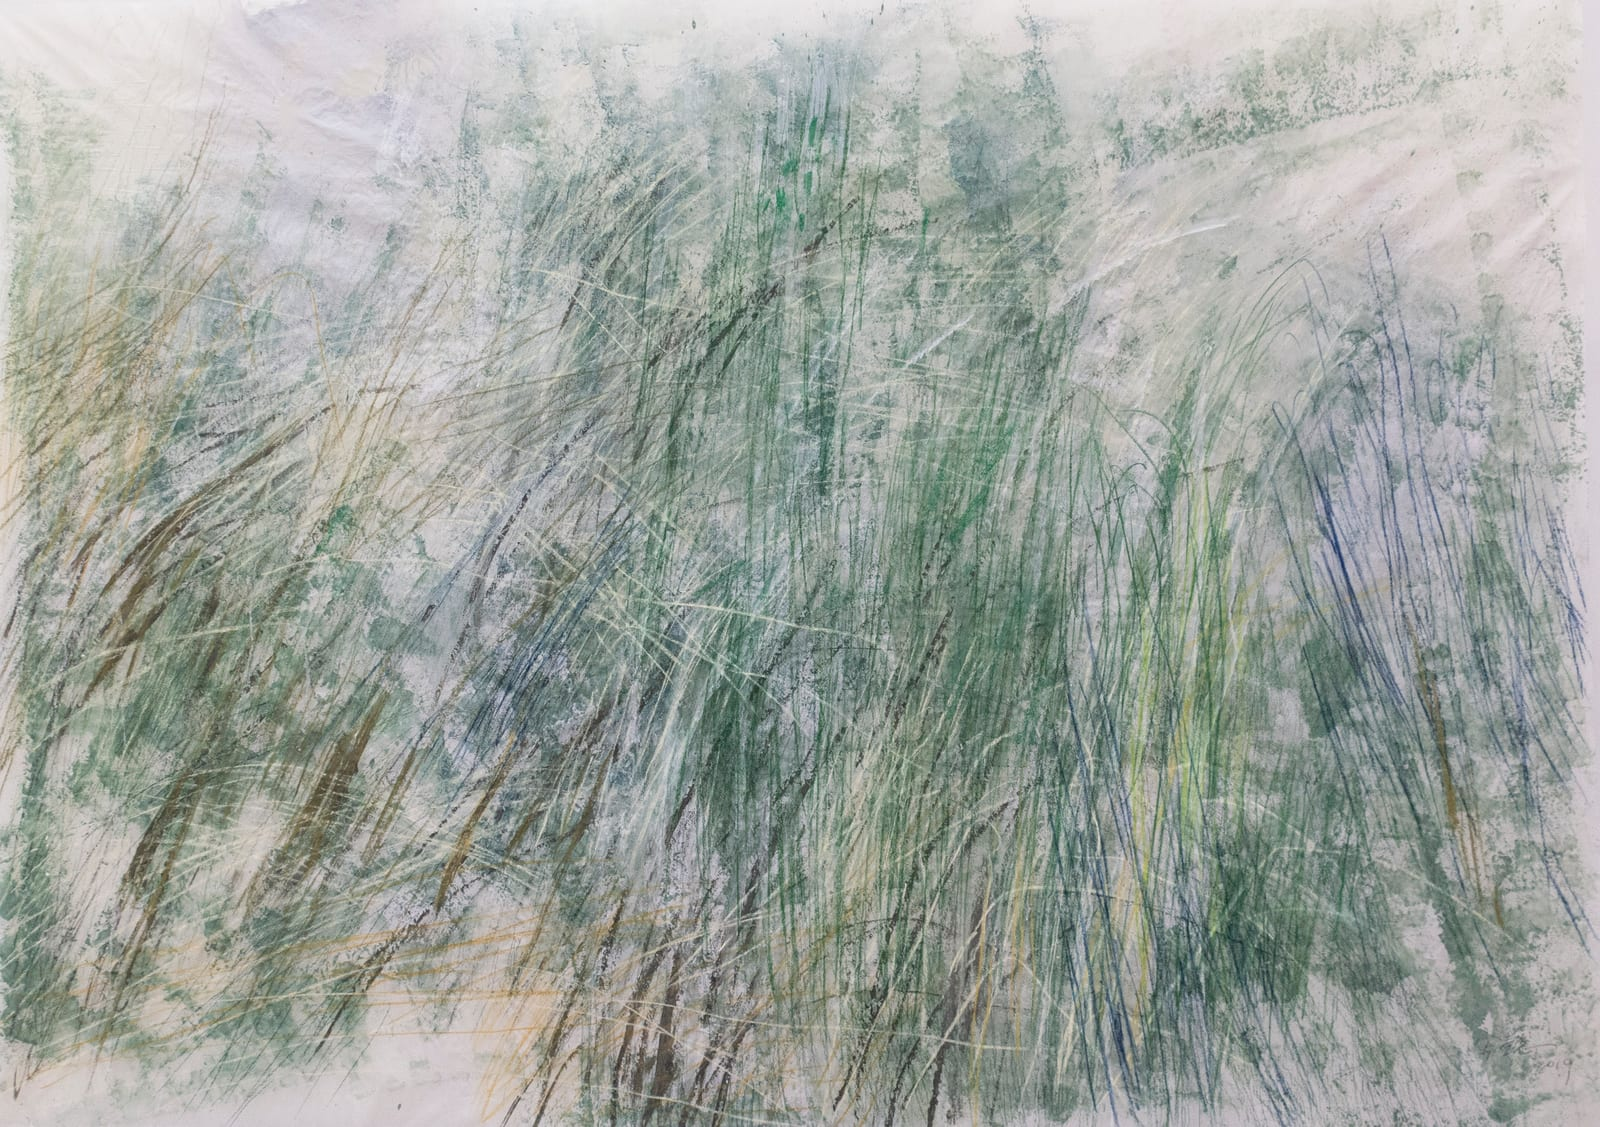 Wang Gongyi 王公懿, Leaves of Grass No.1 草葉集之一, 2019